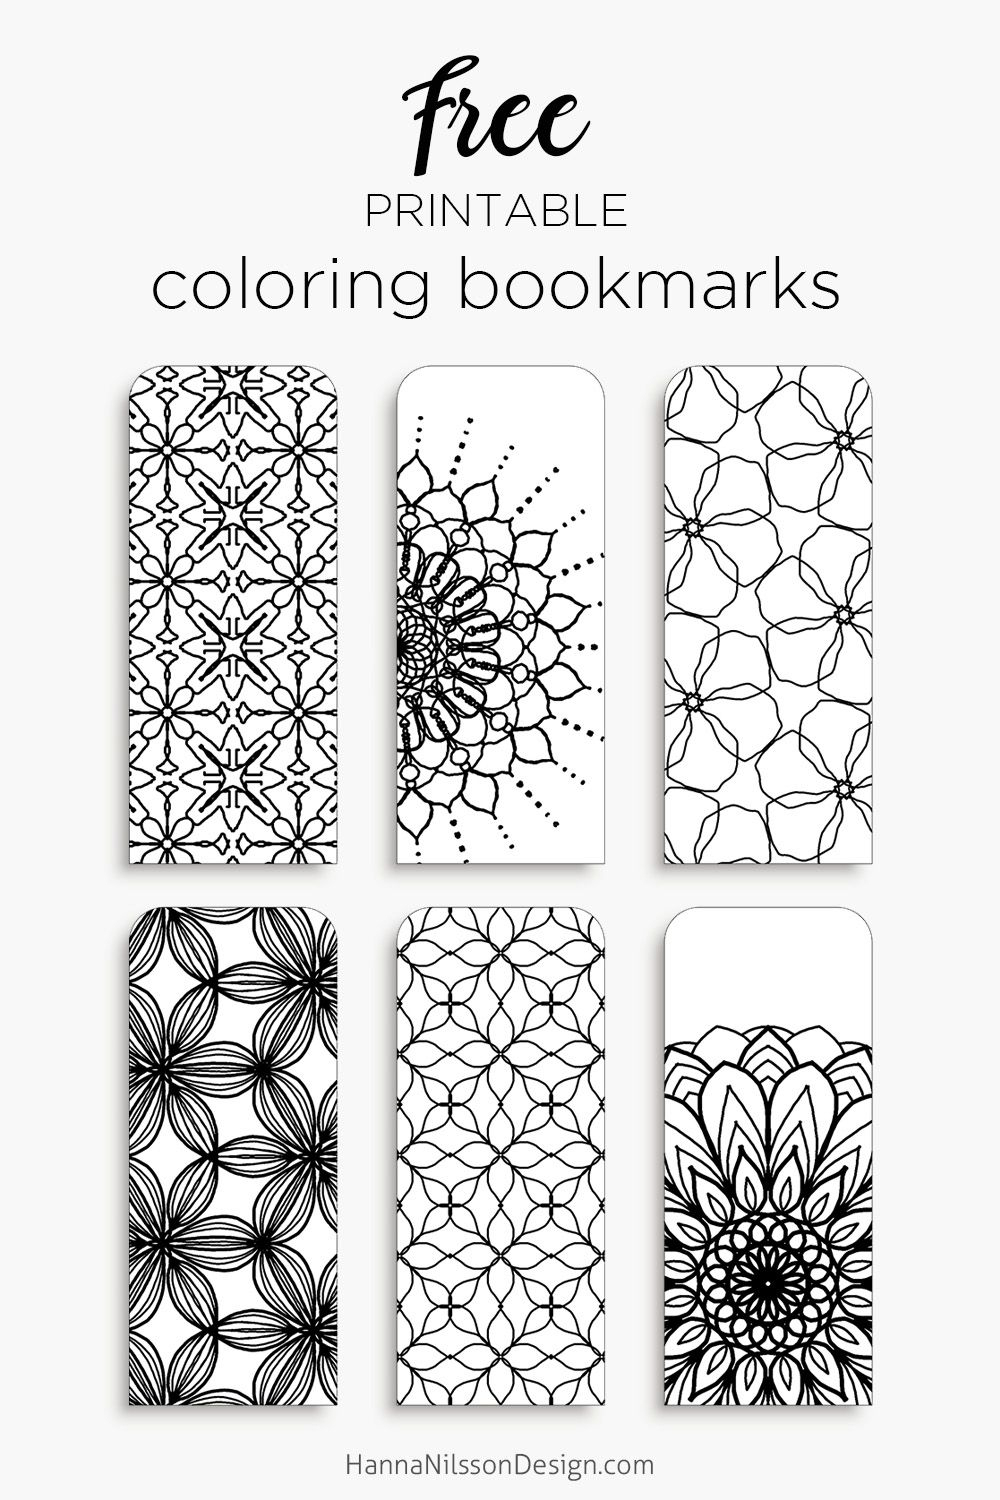 Coloring Bookmarks – Print, Color And Read   Hanna Nilsson Design - Free Printable Blank Bookmarks